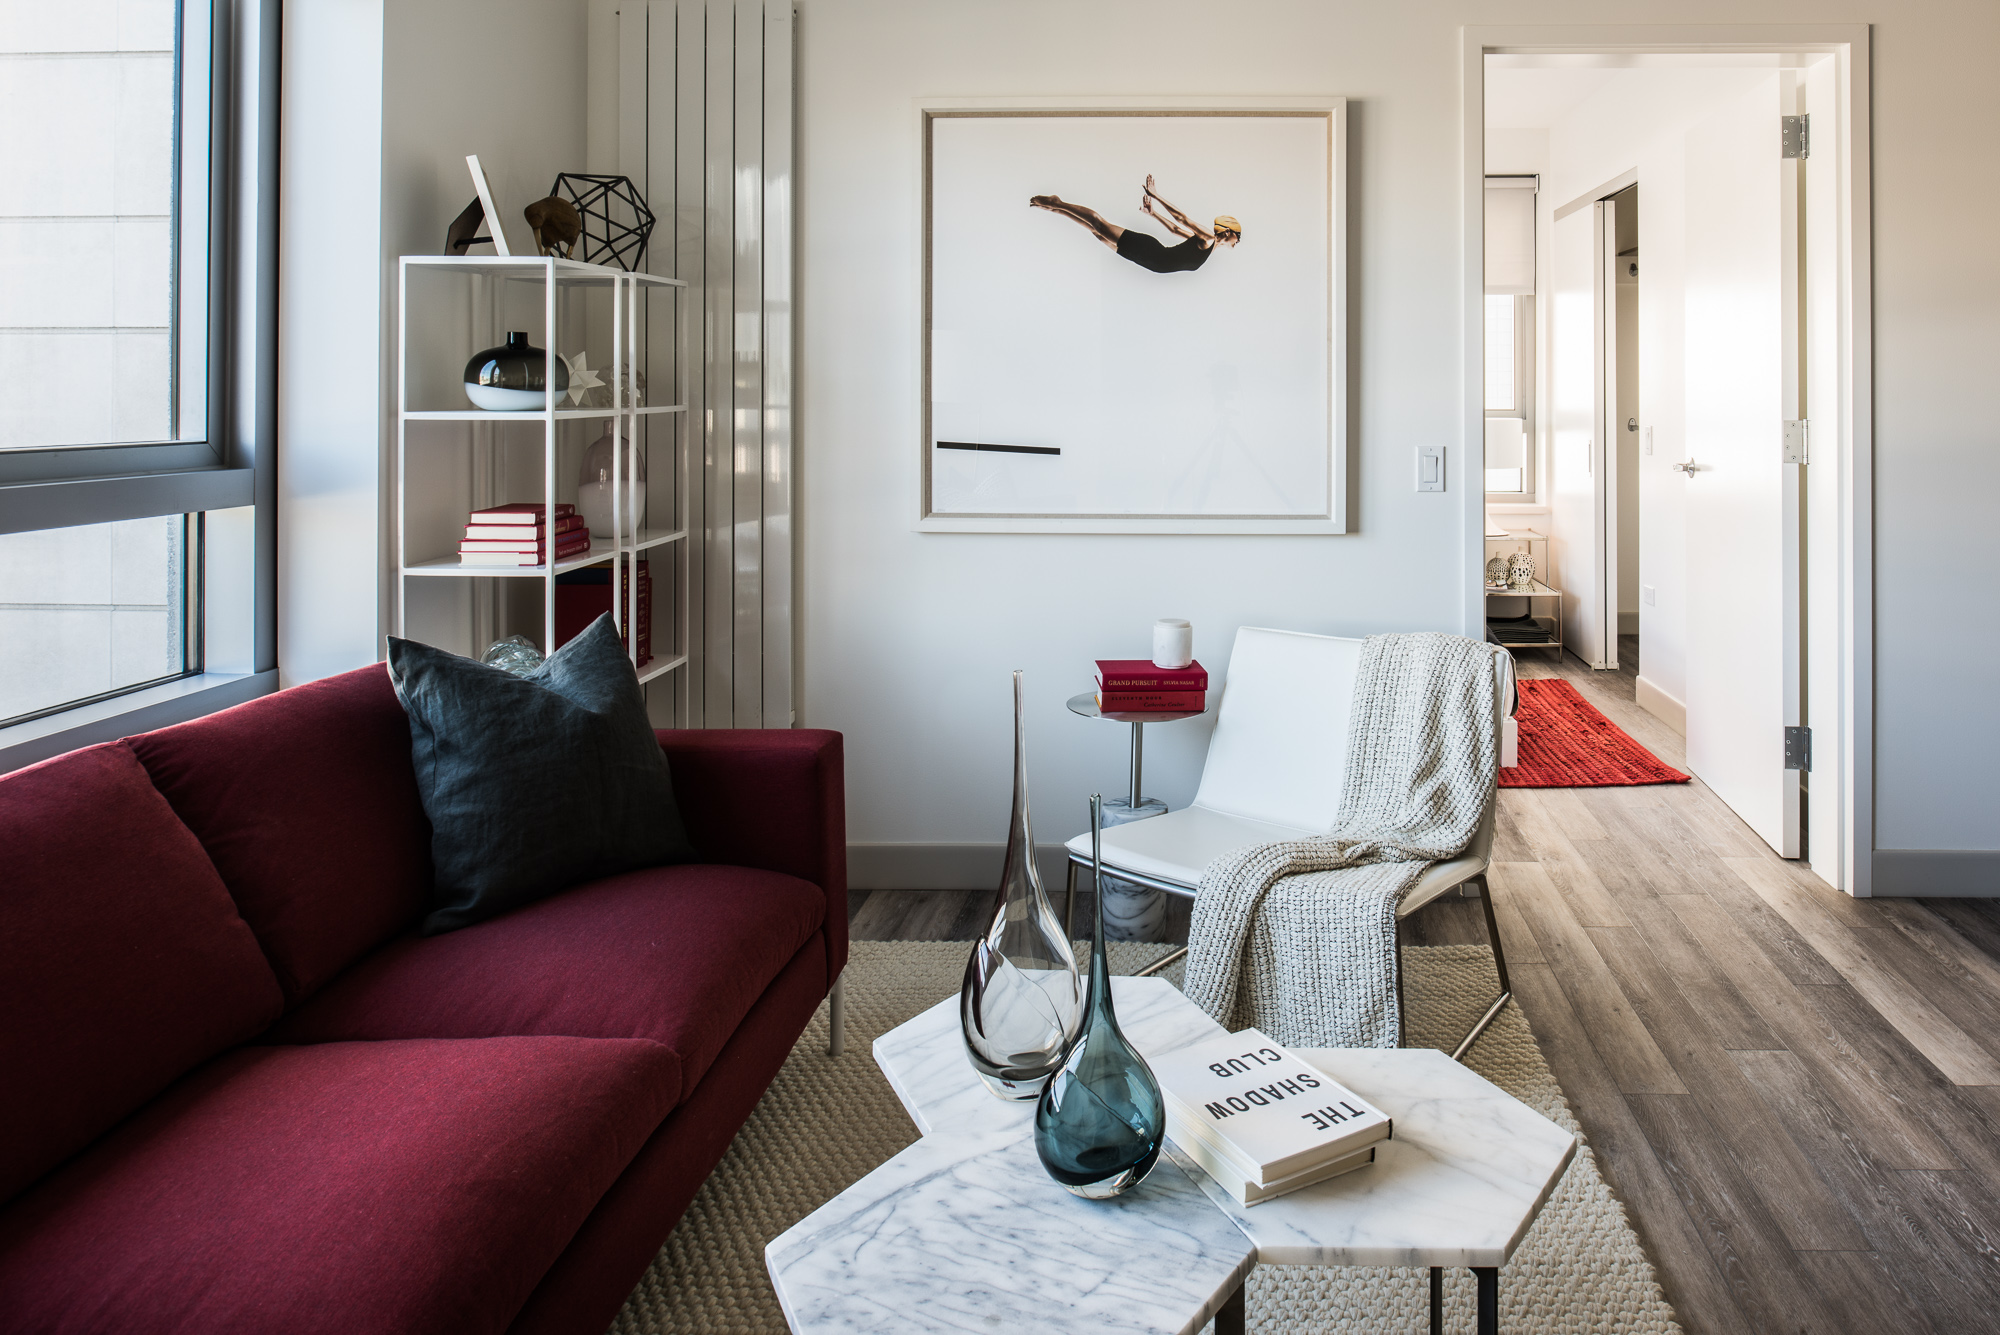 Trinity San Francisco living room with red sofa, white marble tables, and artwork with diver